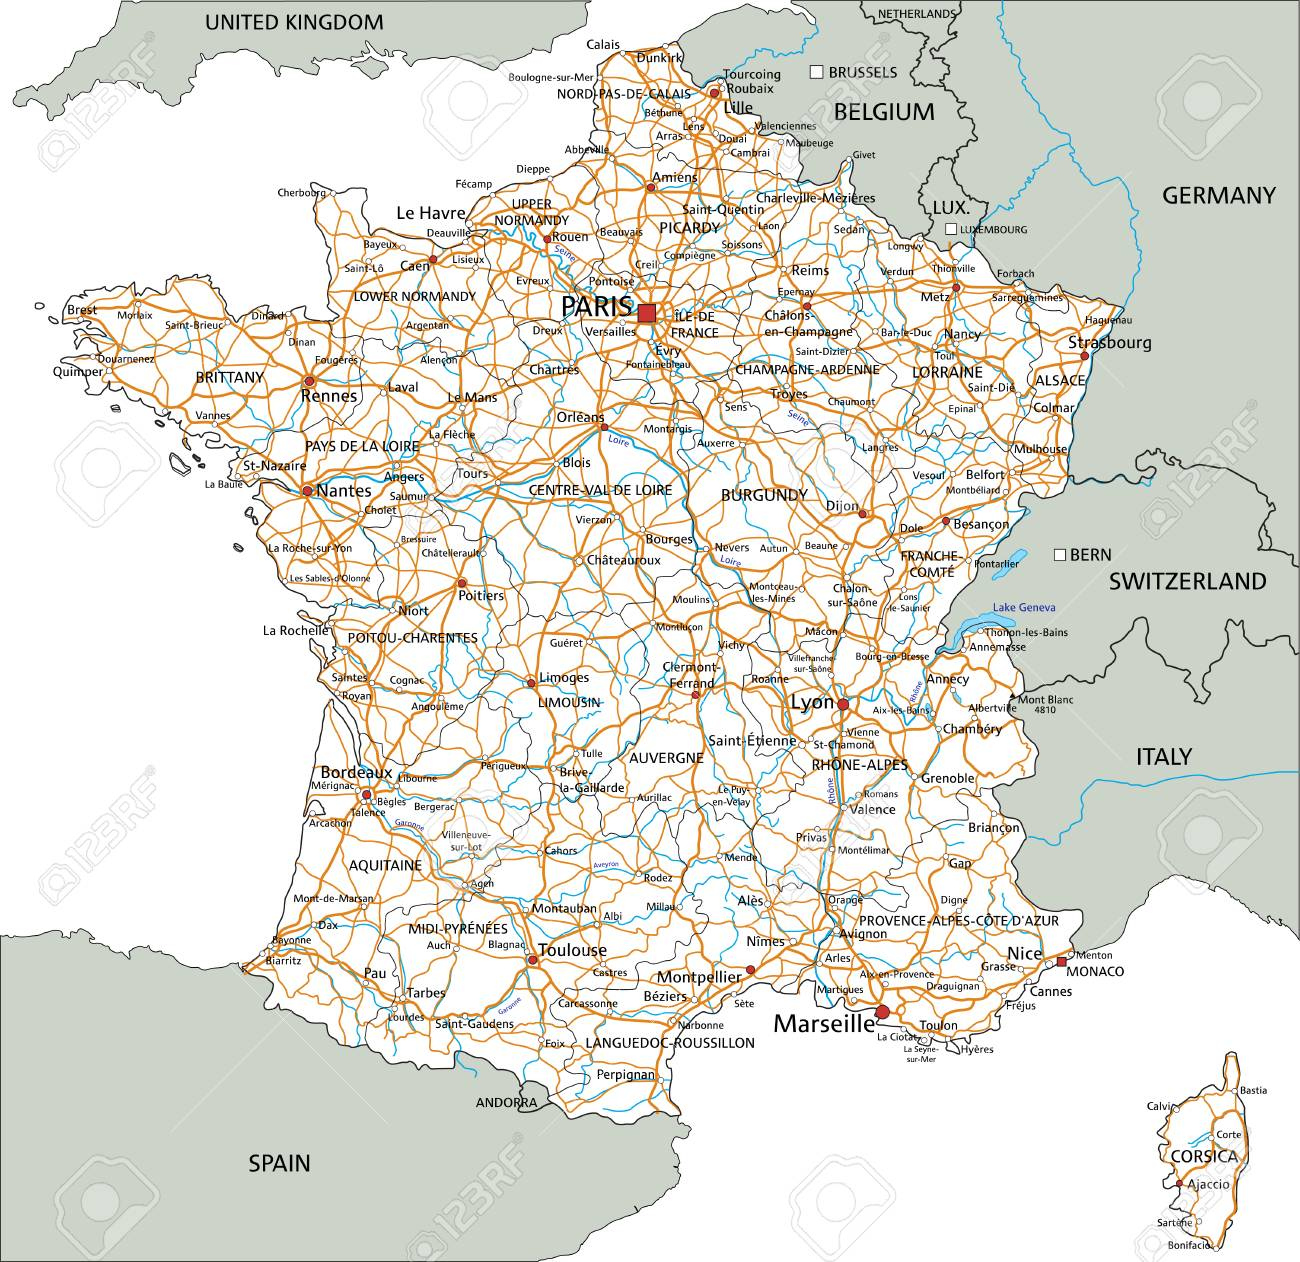 Detailed Road Map Of France.High Detailed France Road Map With Labeling